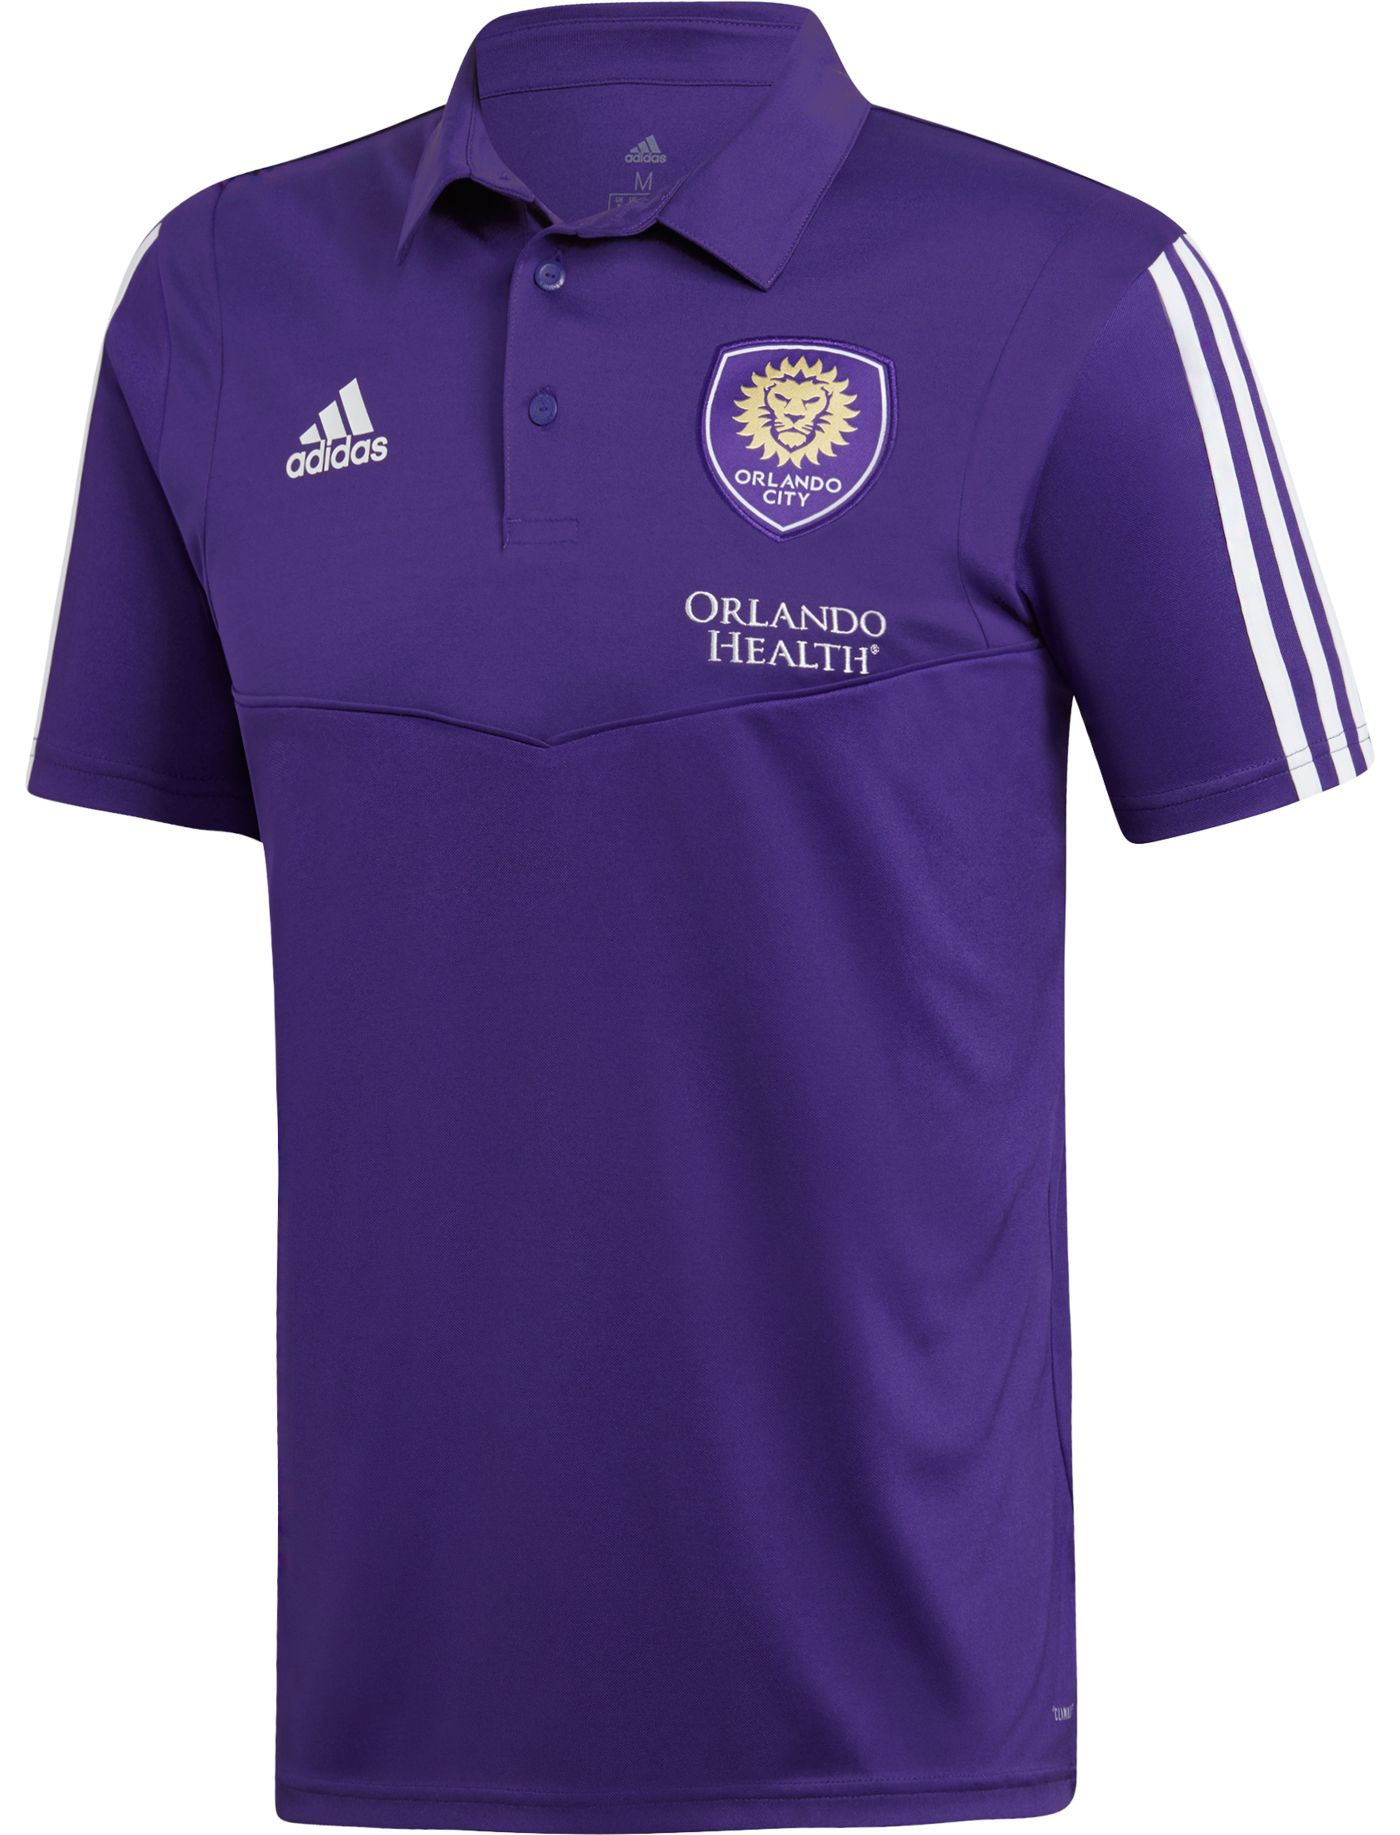 adidas Men's Orlando City Coaches Purple Performance Polo